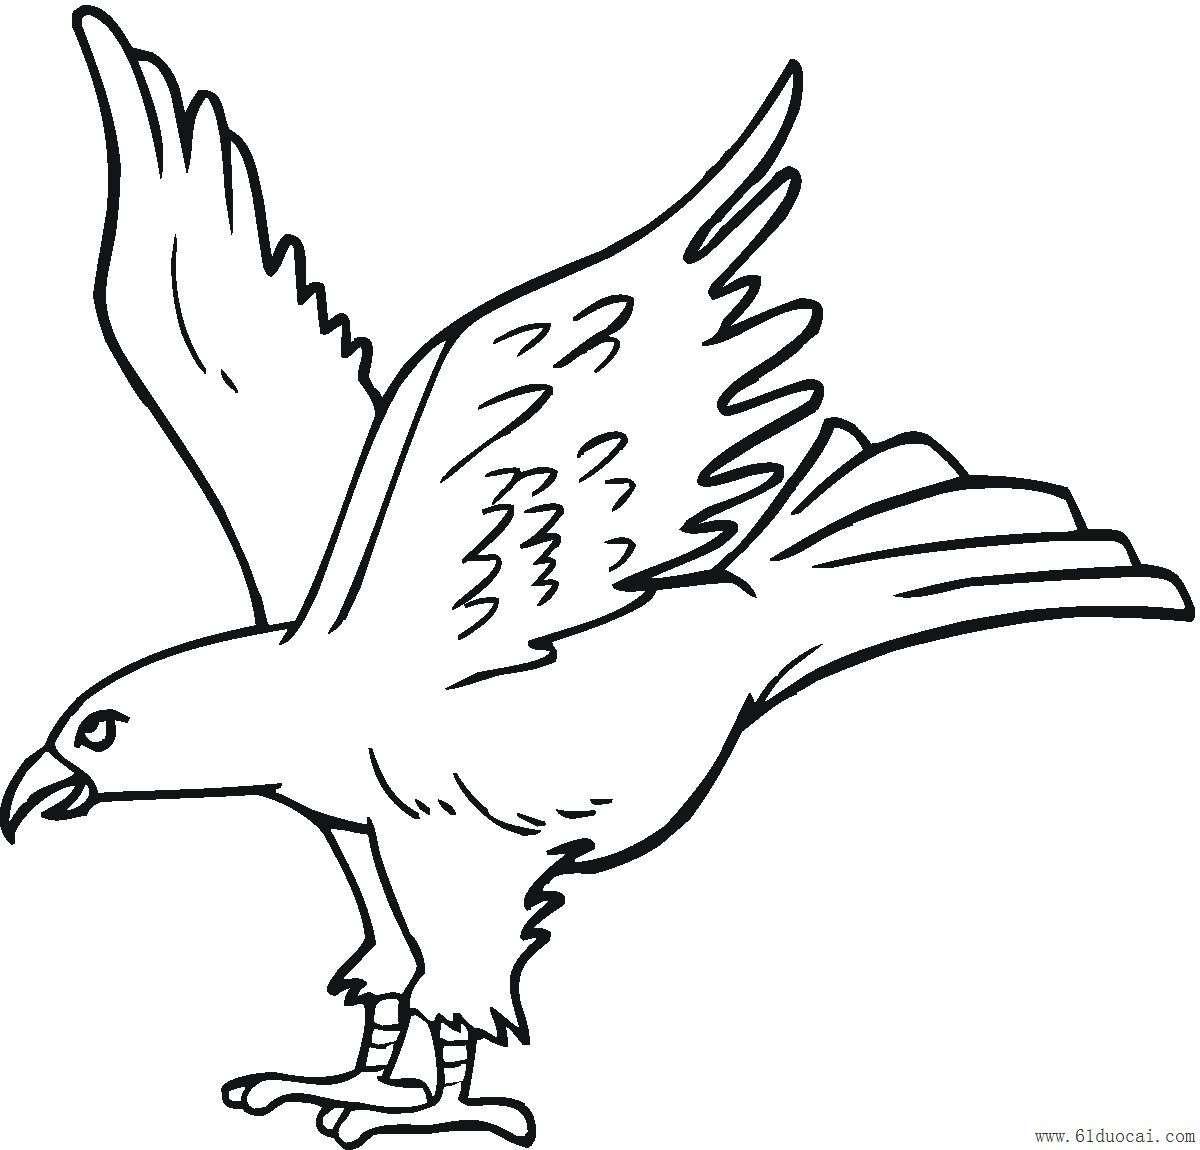 Osprey Bird Coloring Pages Yahoo Image Search Results Coloring